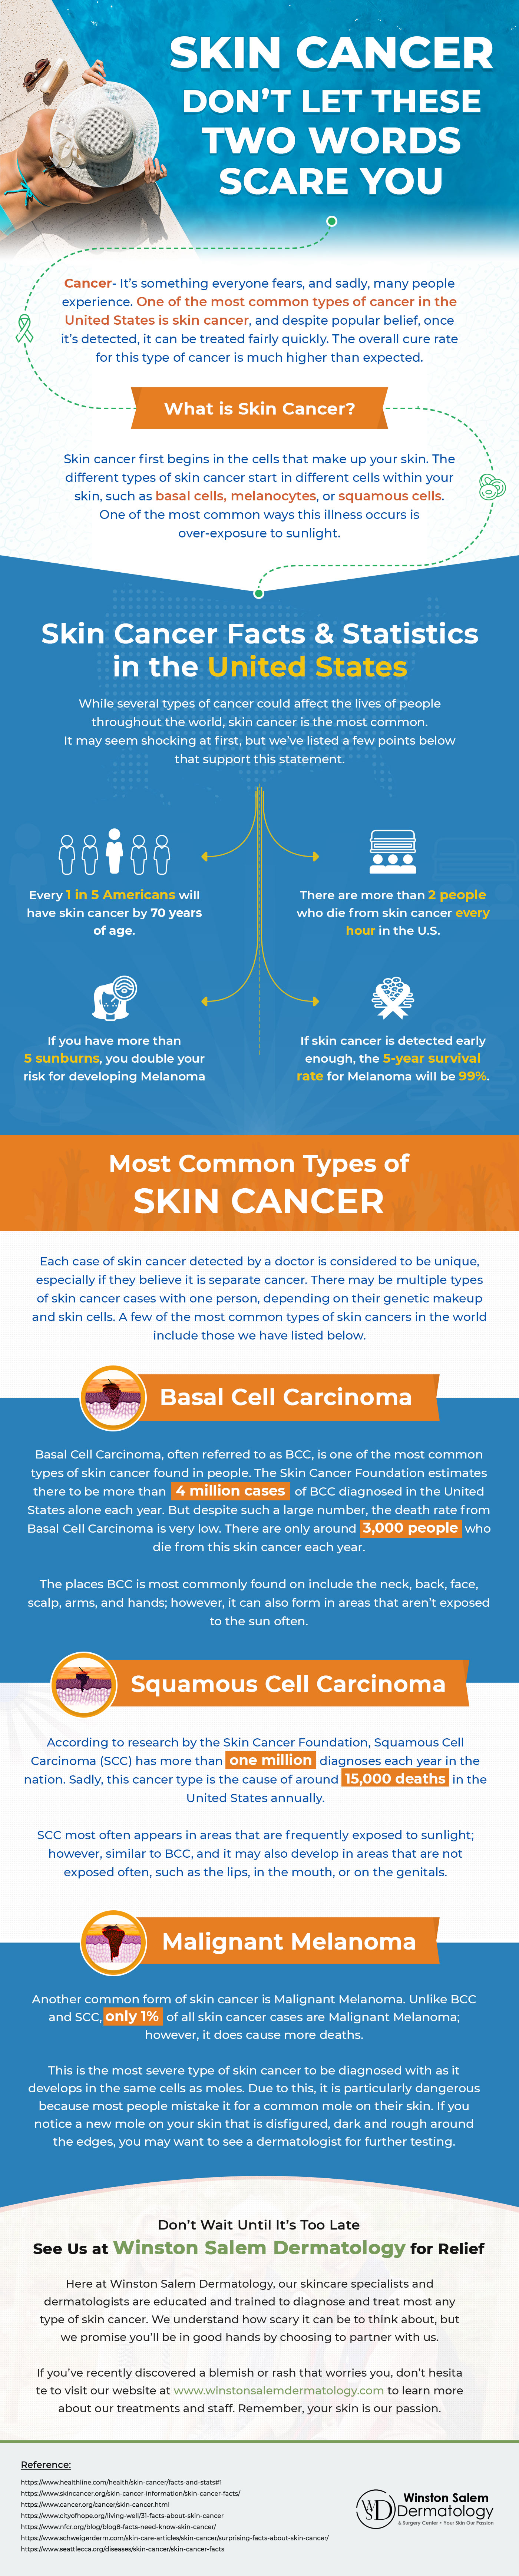 Skin Cancer – Don't Let These Two Words Scare You